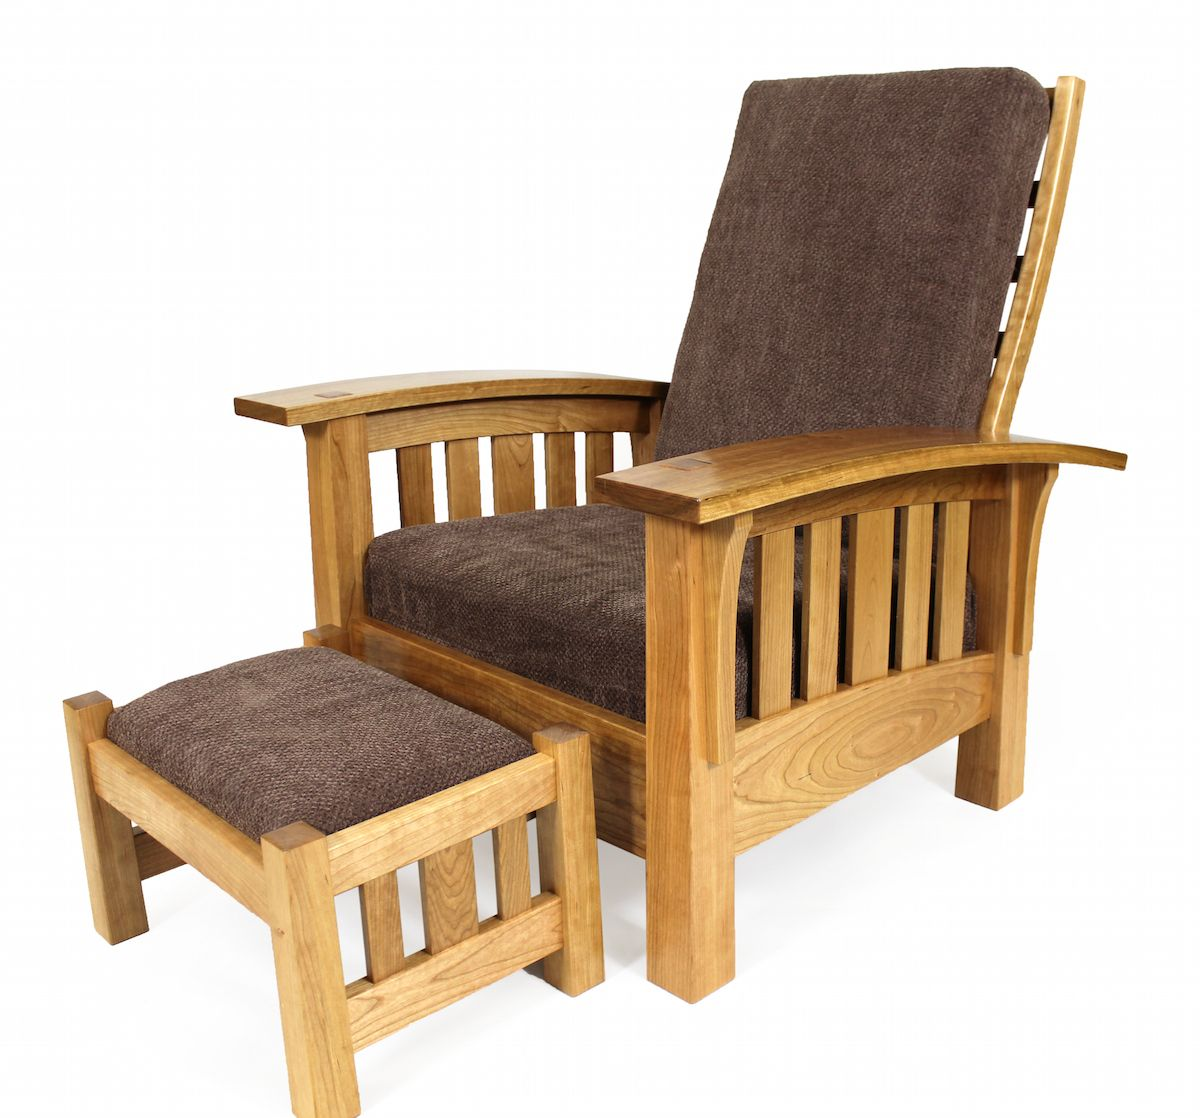 Morris chair plans - The Bow Arm Morris Chair Is A Classic Woodworking Project With A Rich History Dating Back